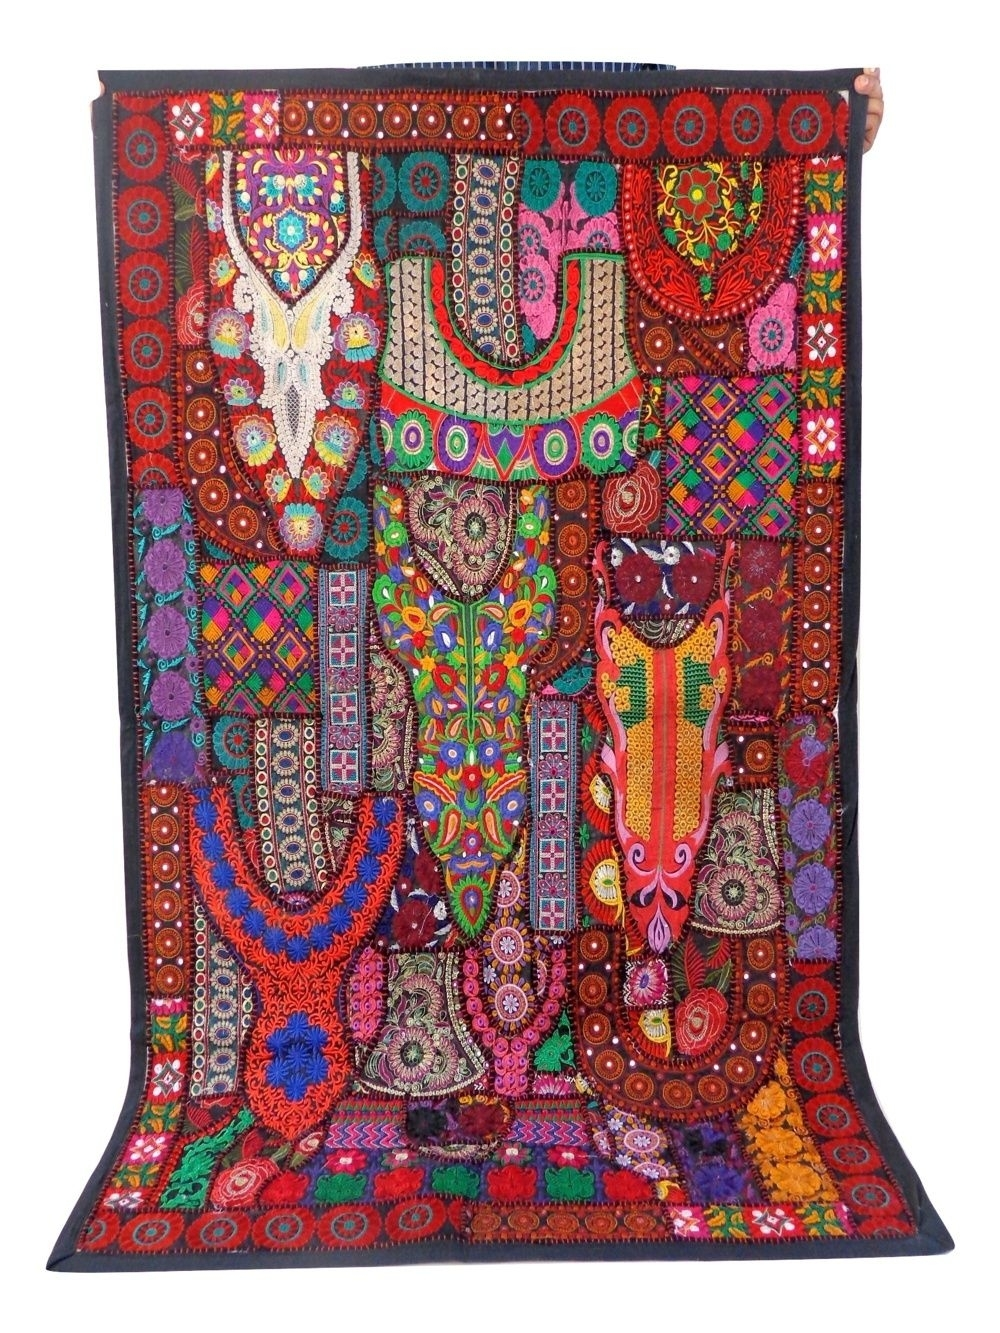 Designer Vintage Embroidered Patchwork Tapestry – Boho Hippie Wall Inside Most Popular Indian Fabric Art Wall Hangings (View 13 of 15)